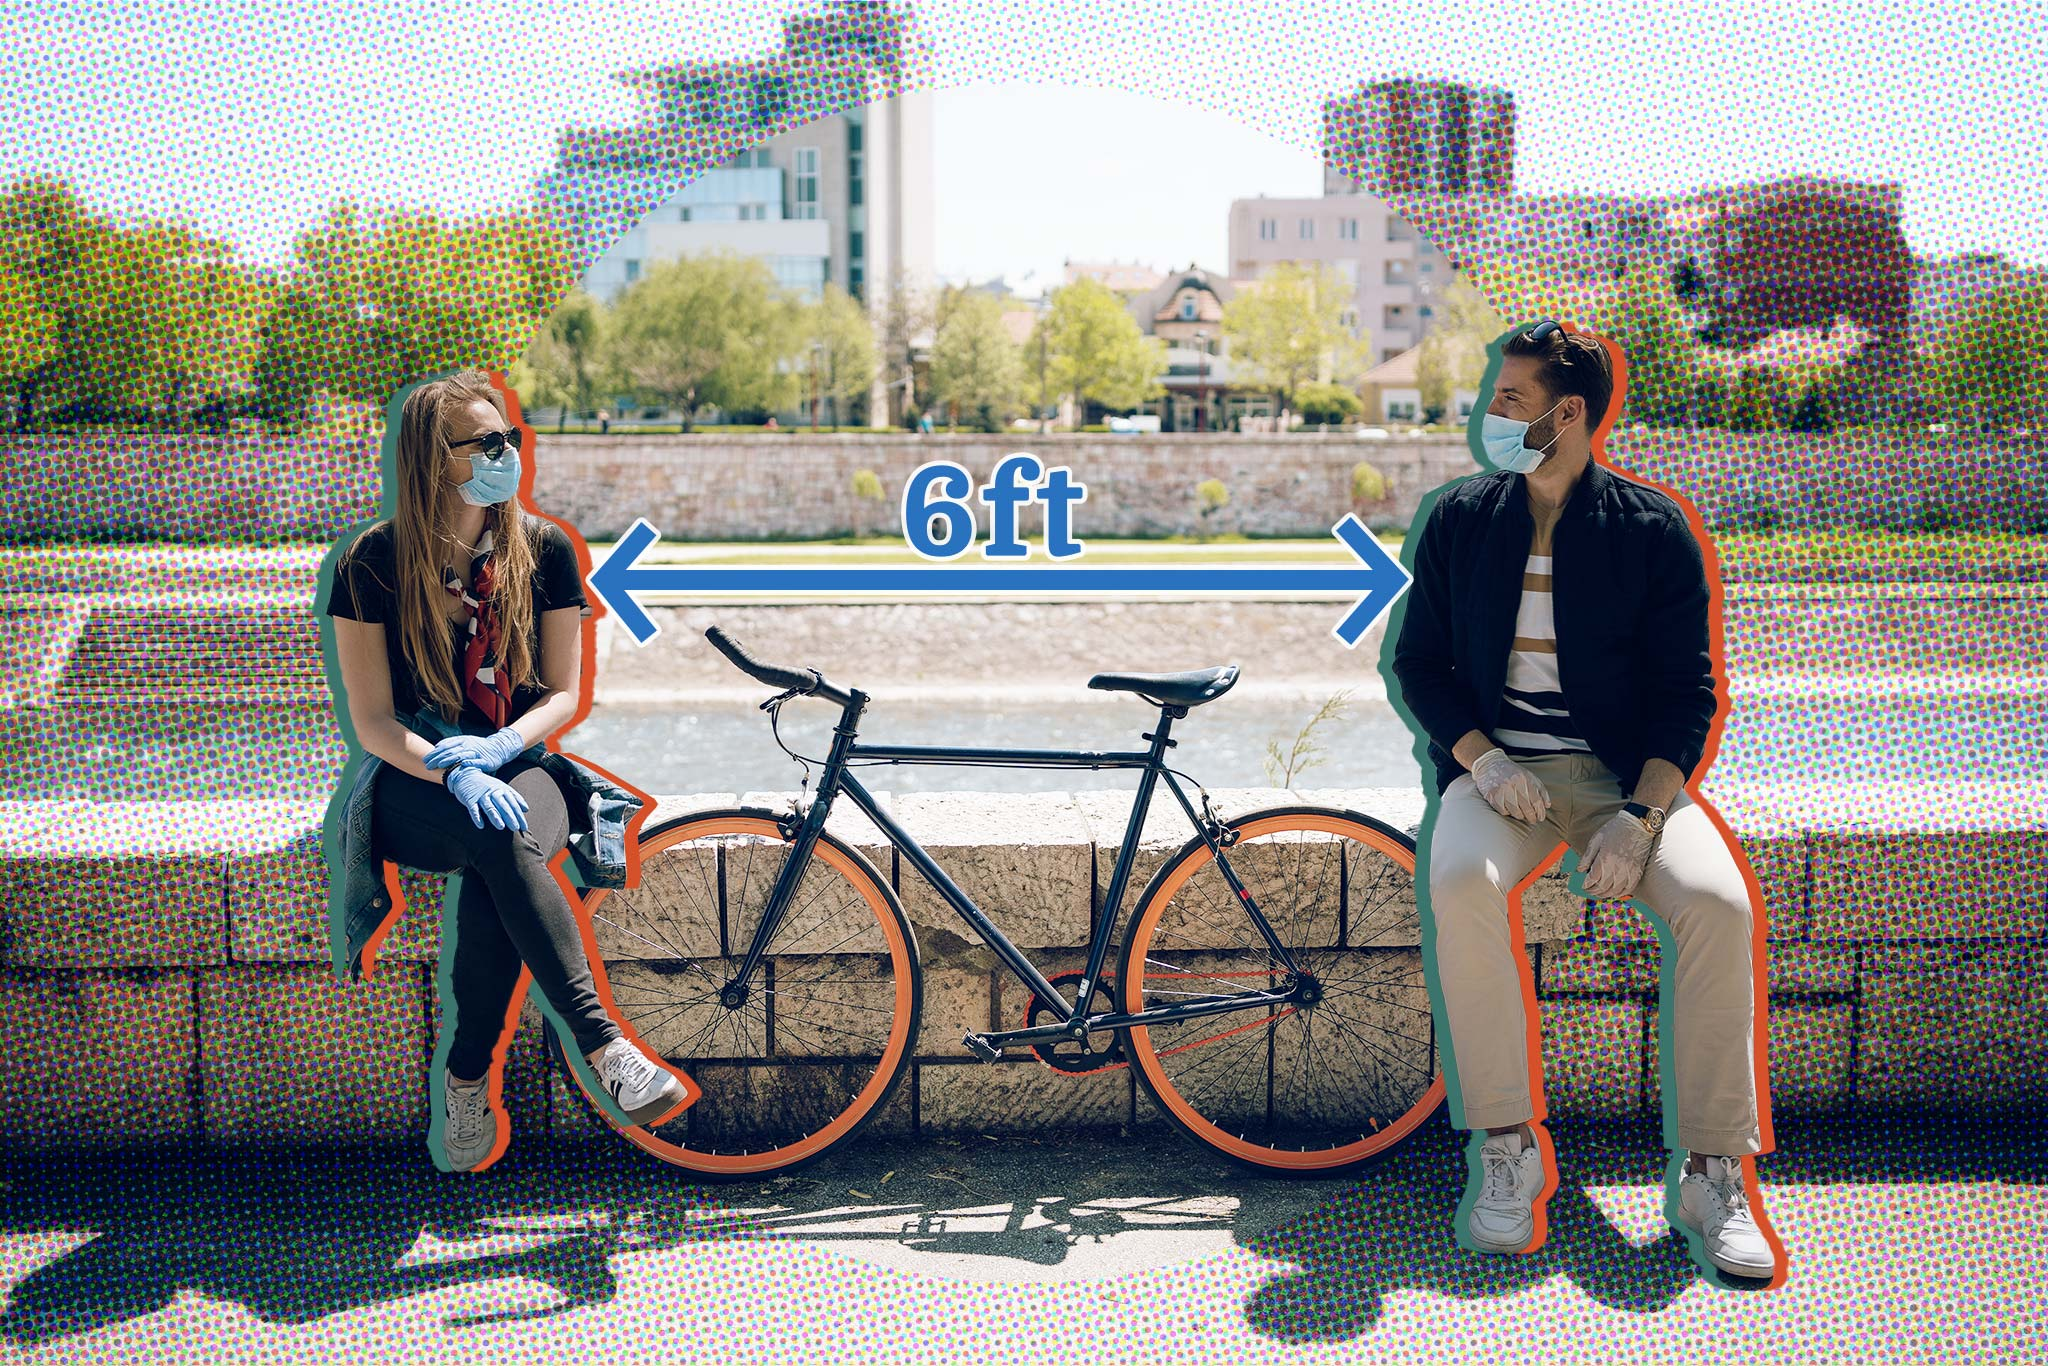 Image of two people outside, wearing masks, with a bike between them and the caption, '6 ft'